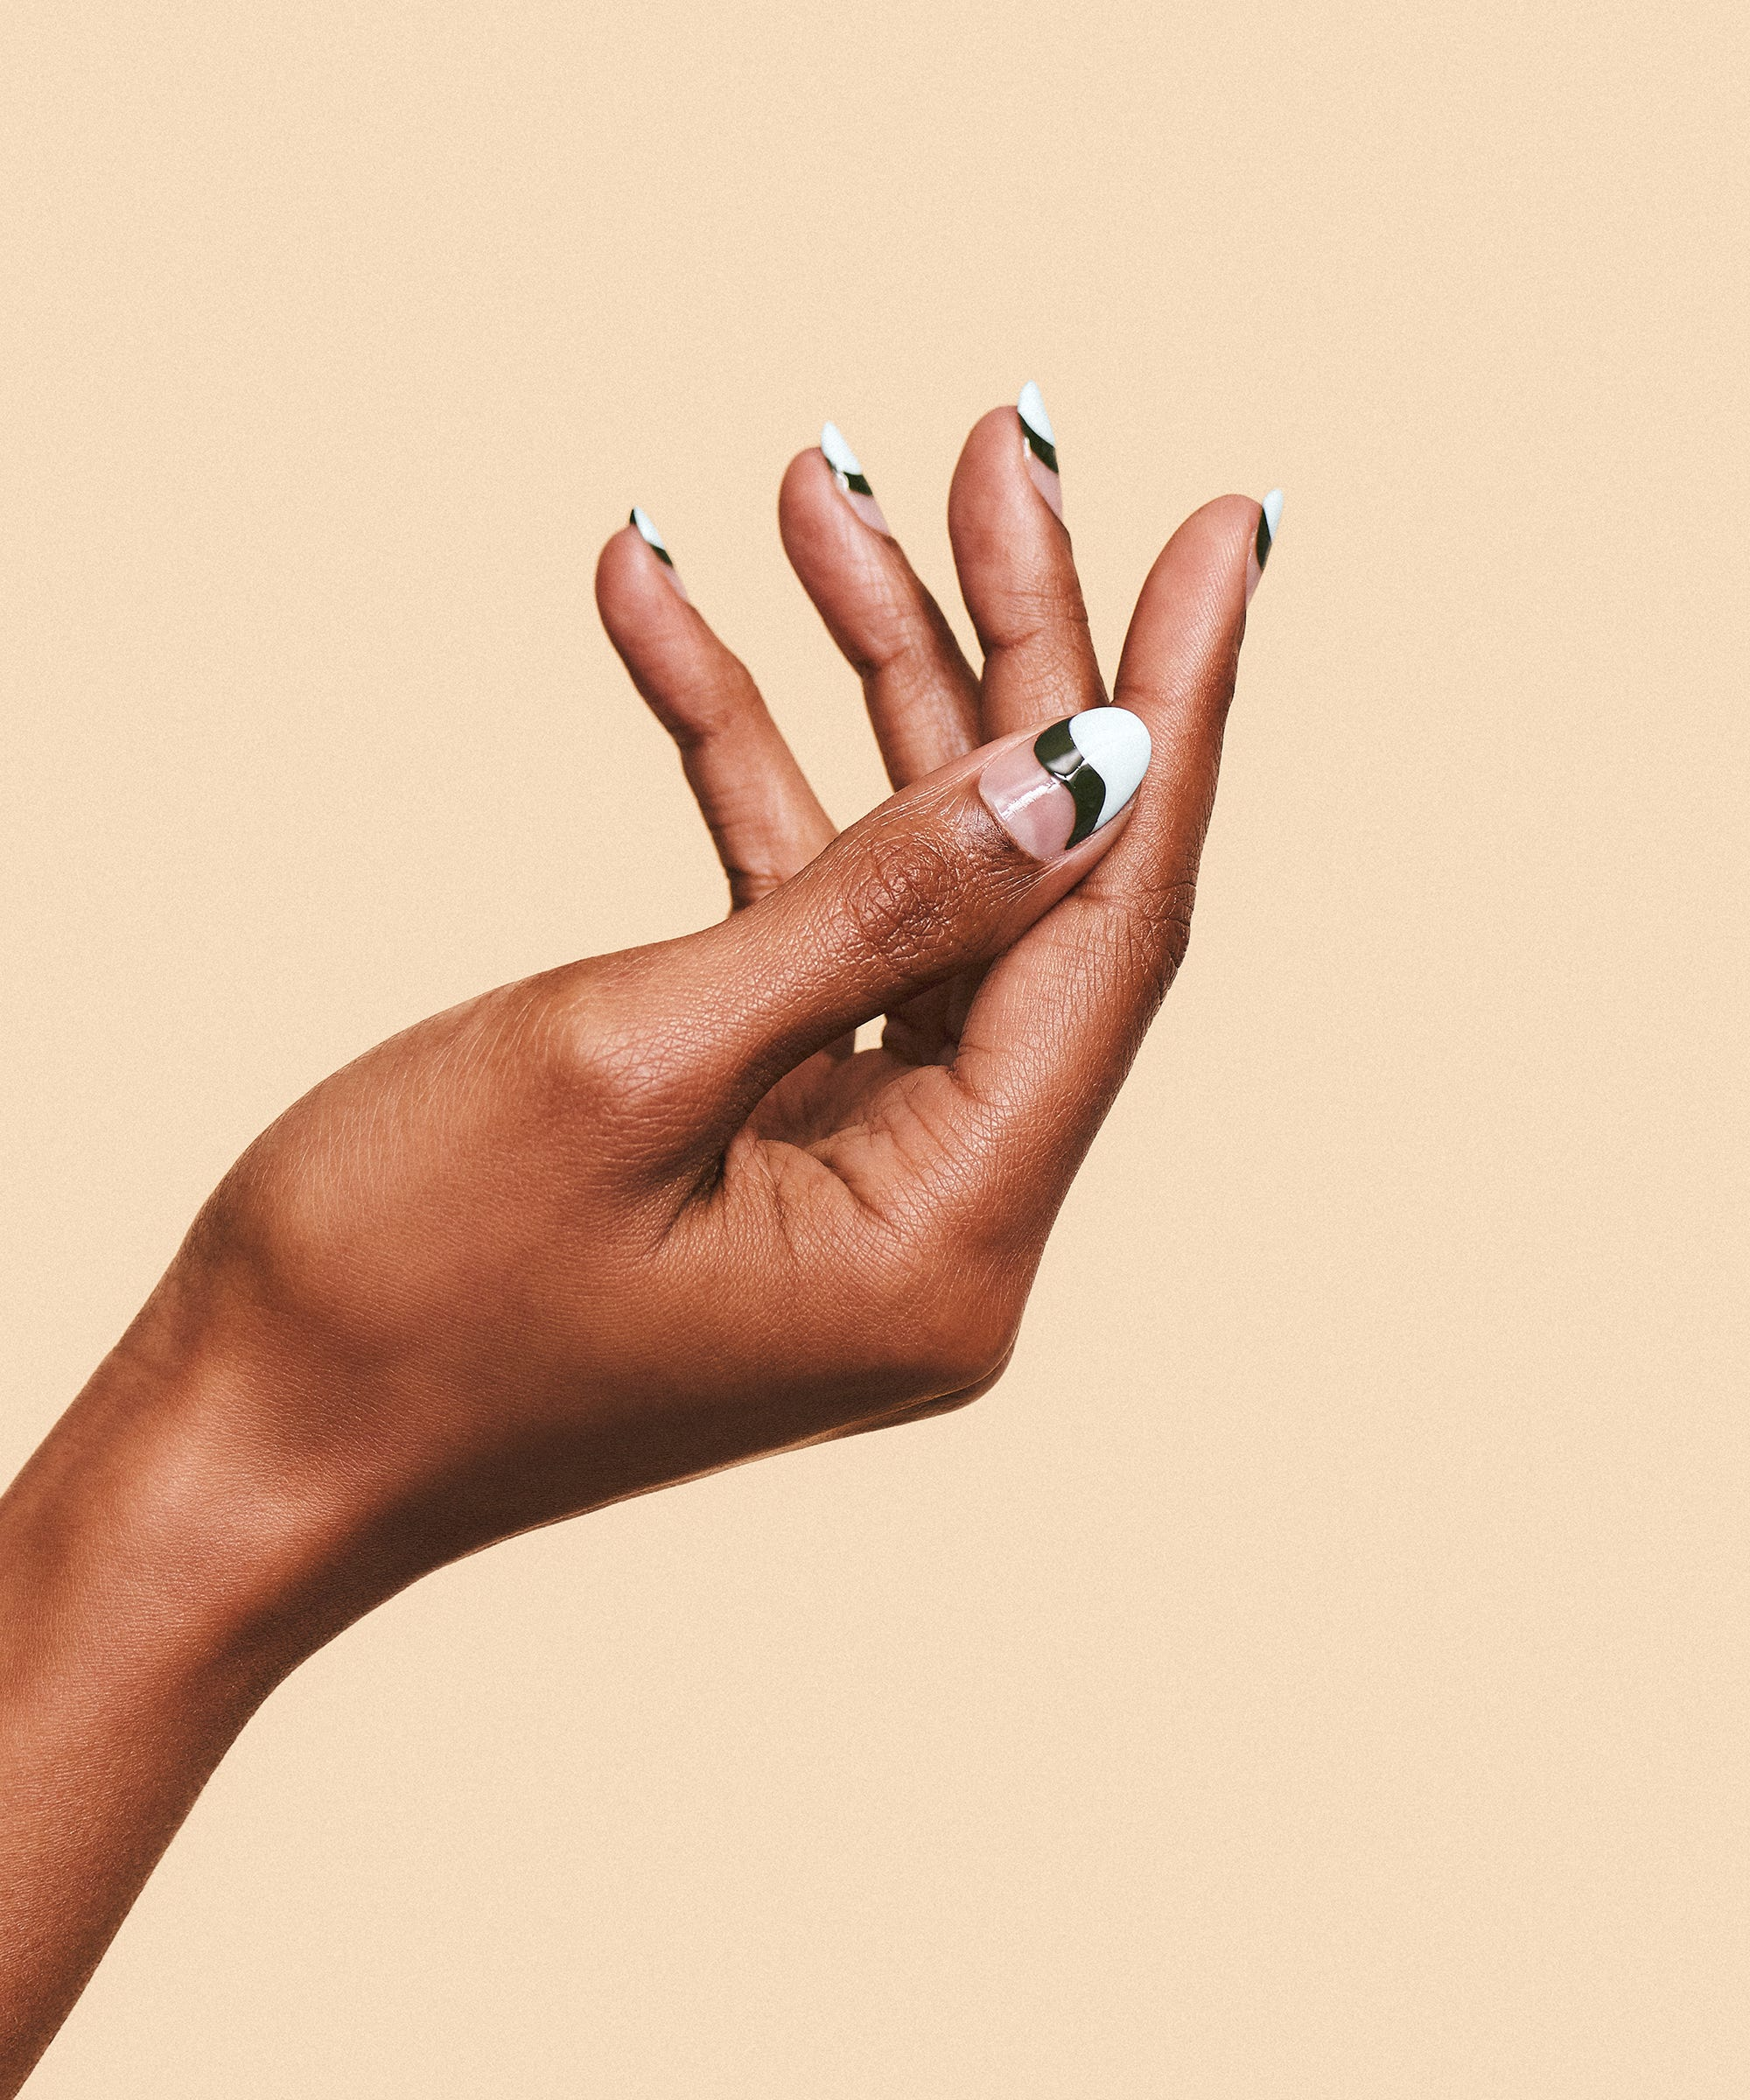 NYC's Trendiest Salon Just Dropped The Next Big Thing In Nail Polish